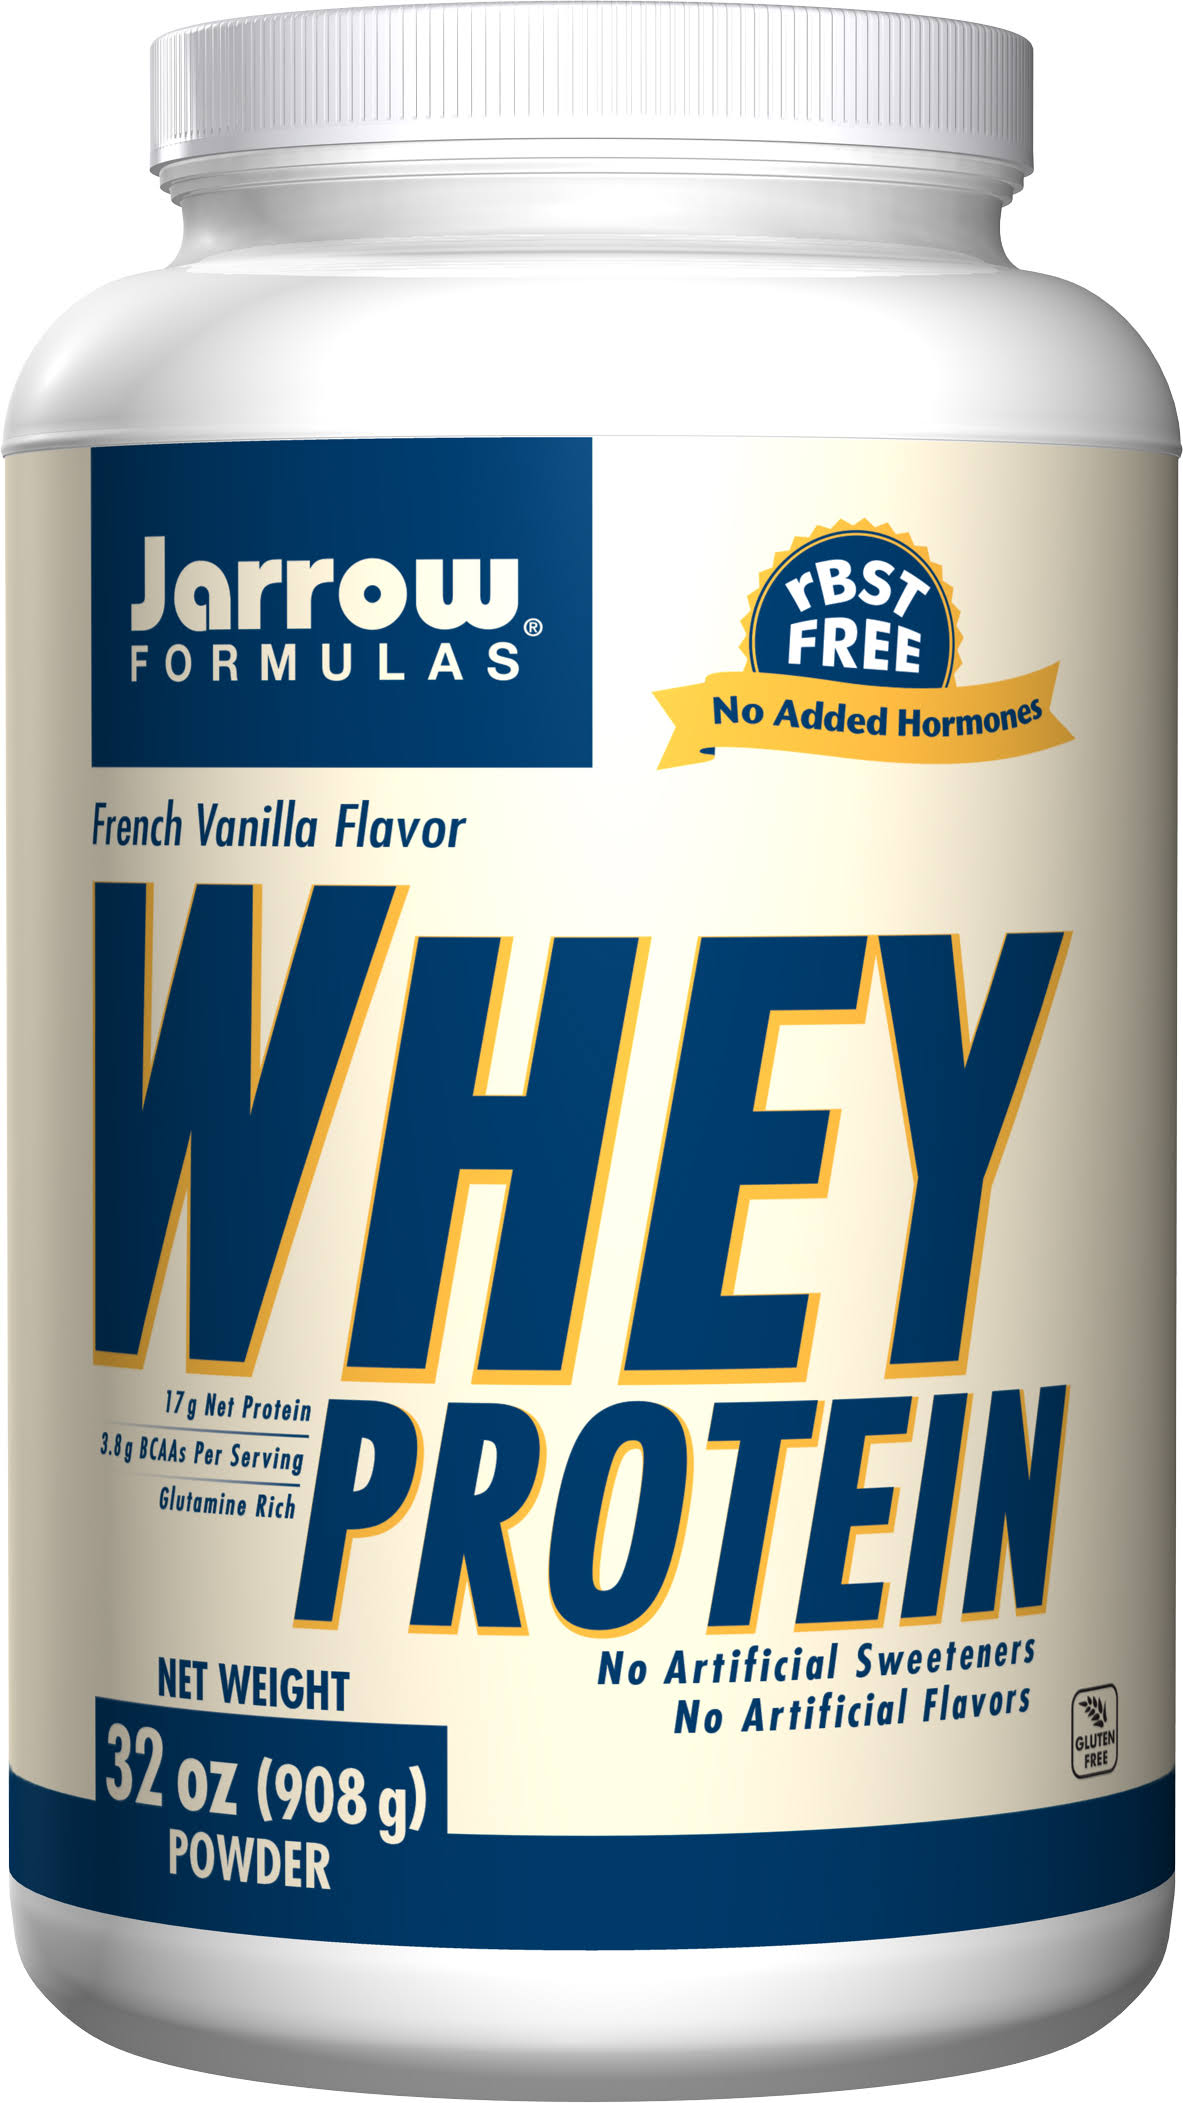 Jarrow Formulas Whey Protein Dietary Supplement - French Vanilla, 2lbs